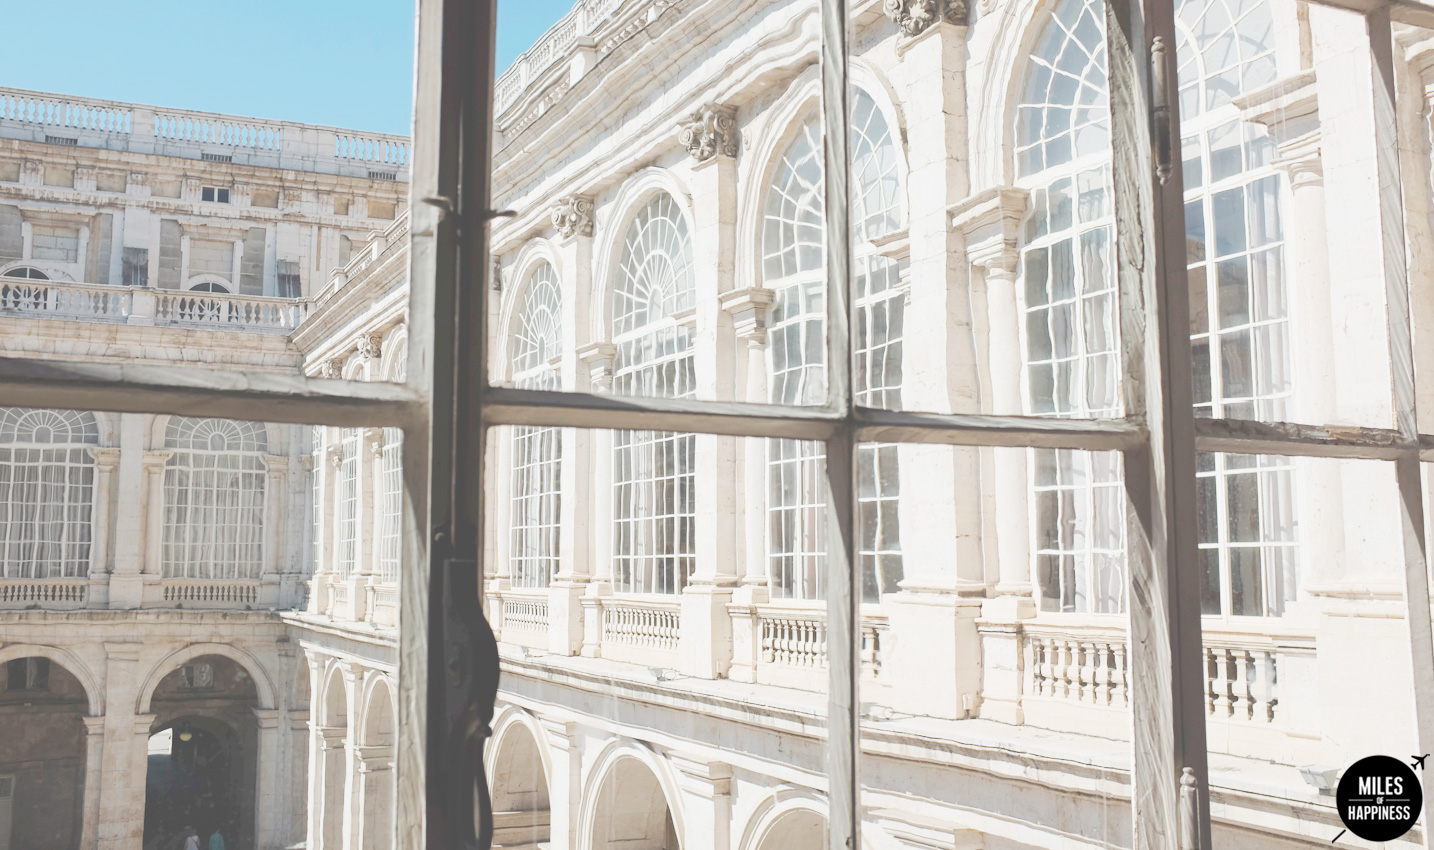 What to do in Madrid: The Palacio Real